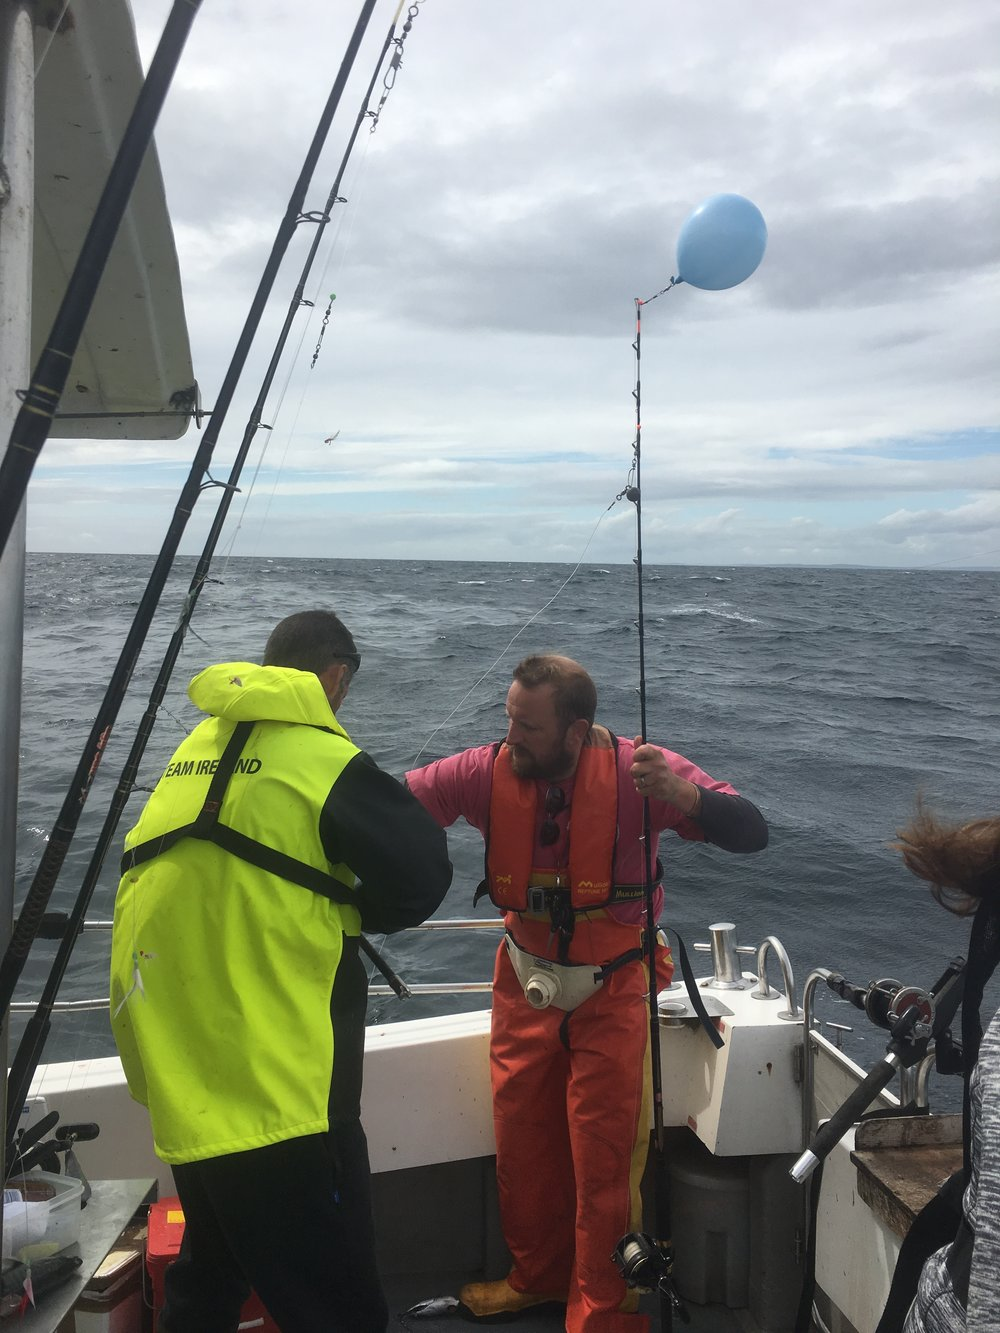 Using balloons as floats is common practice here when angling for blue sharks.